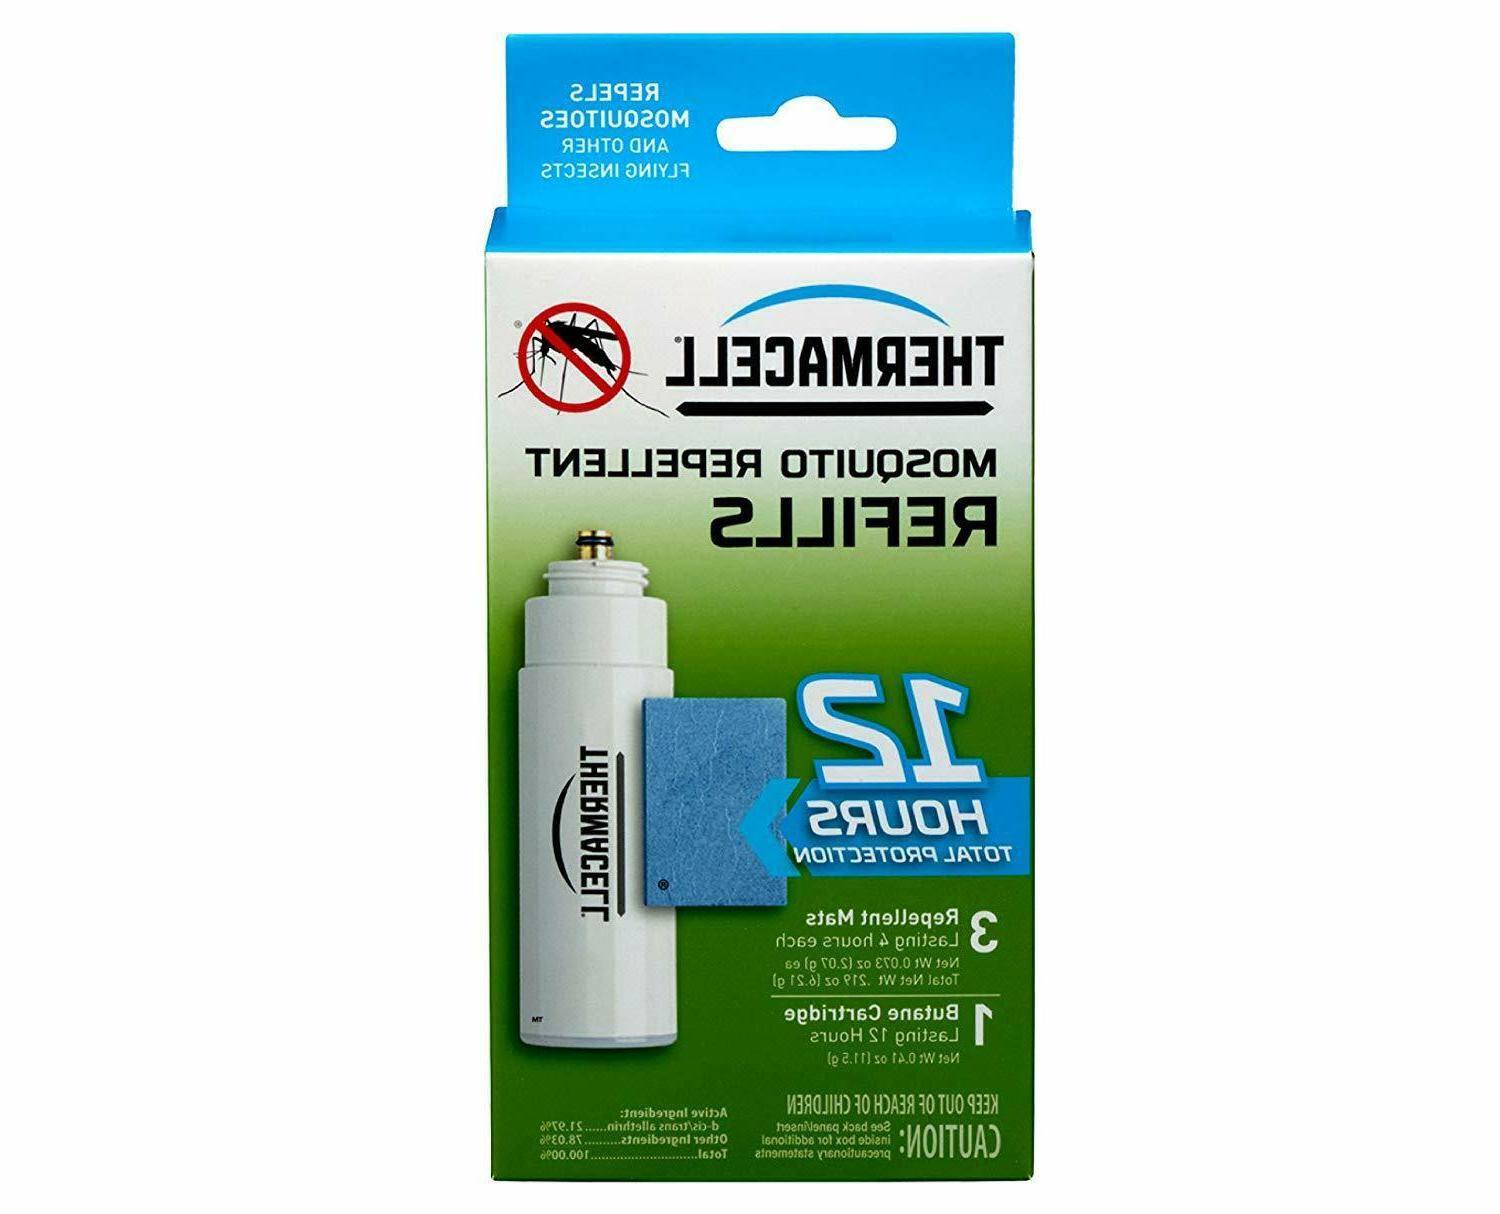 r 1 mosquito repeller refill 12 hour